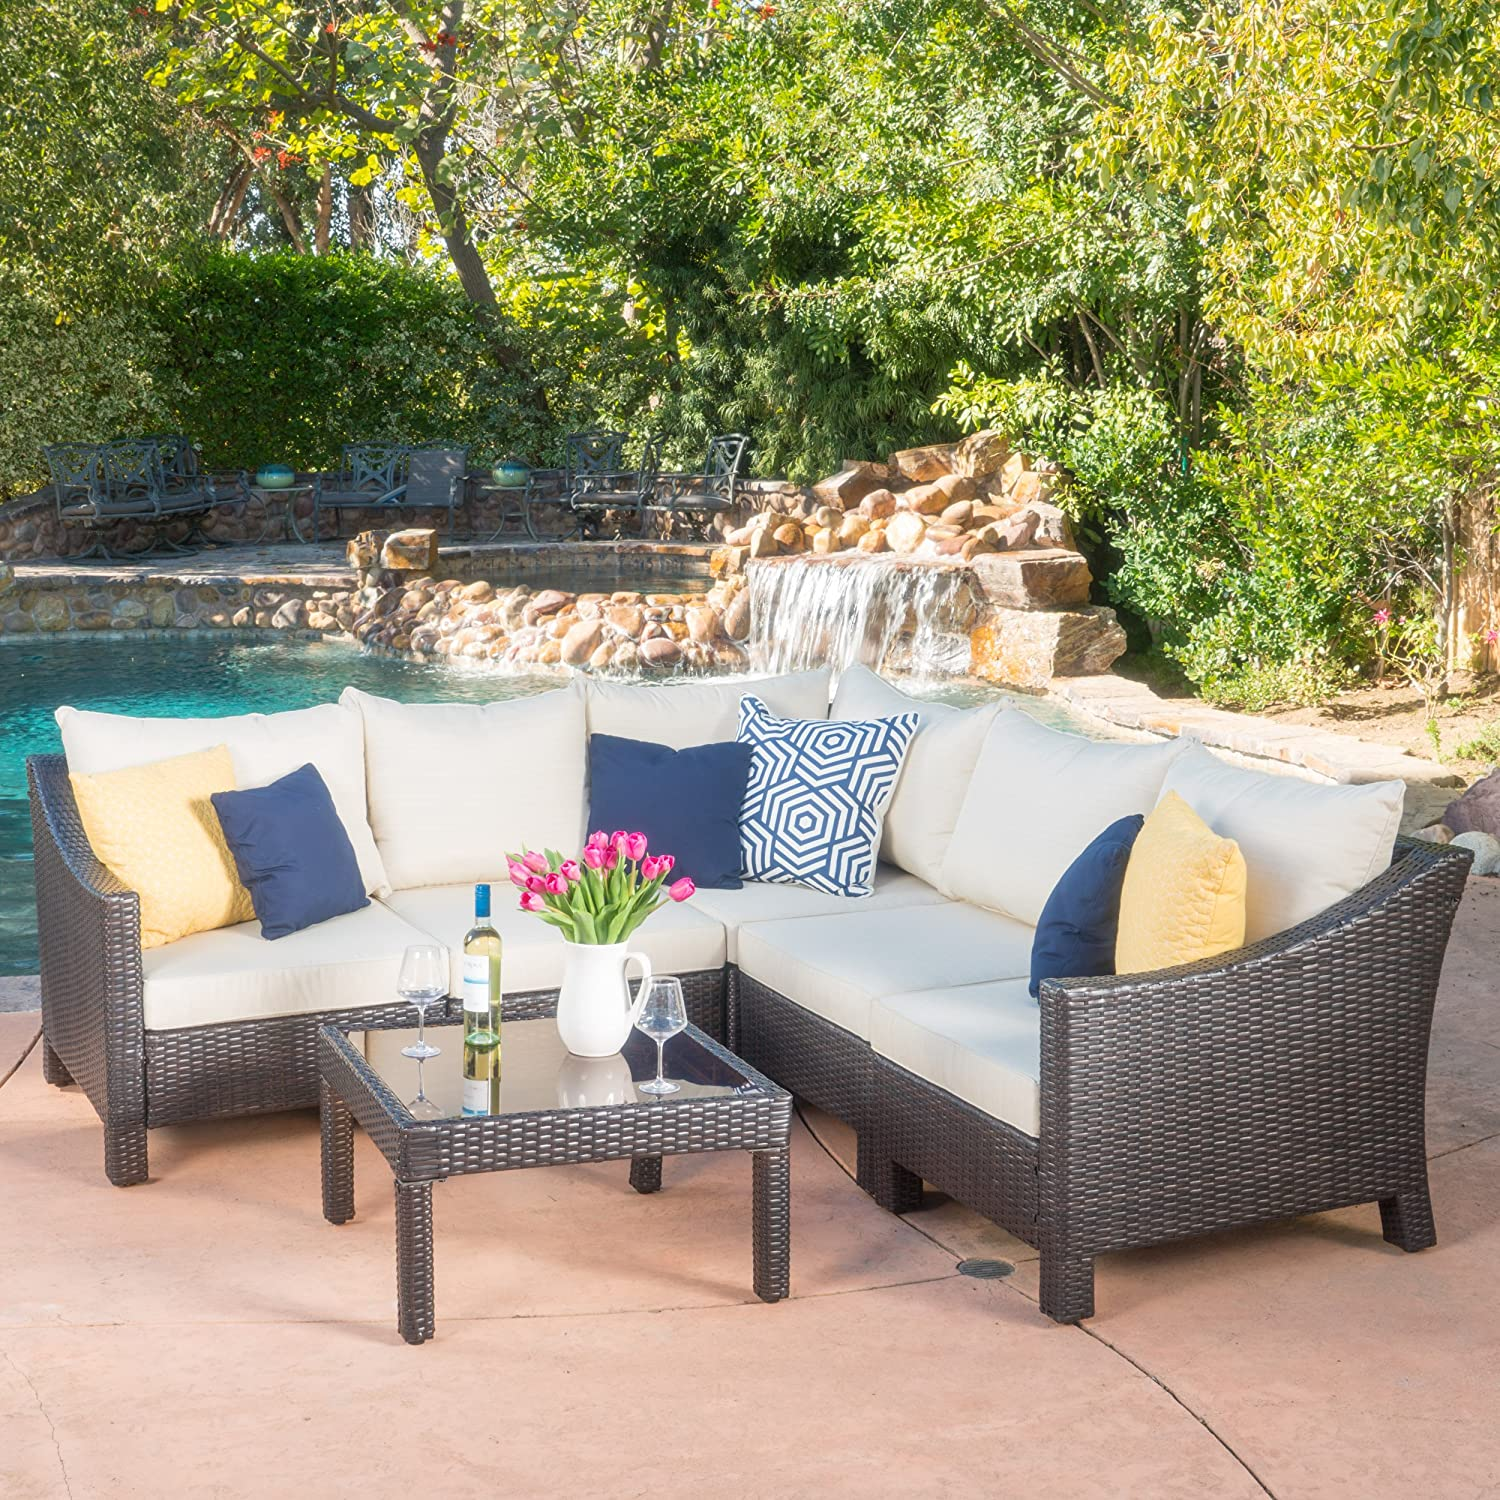 Amazon.com Caspian 6 Piece Outdoor Wicker Furniture Patio Sectional Sofa Set Kitchen u0026 Dining : wicker sectional - Sectionals, Sofas & Couches